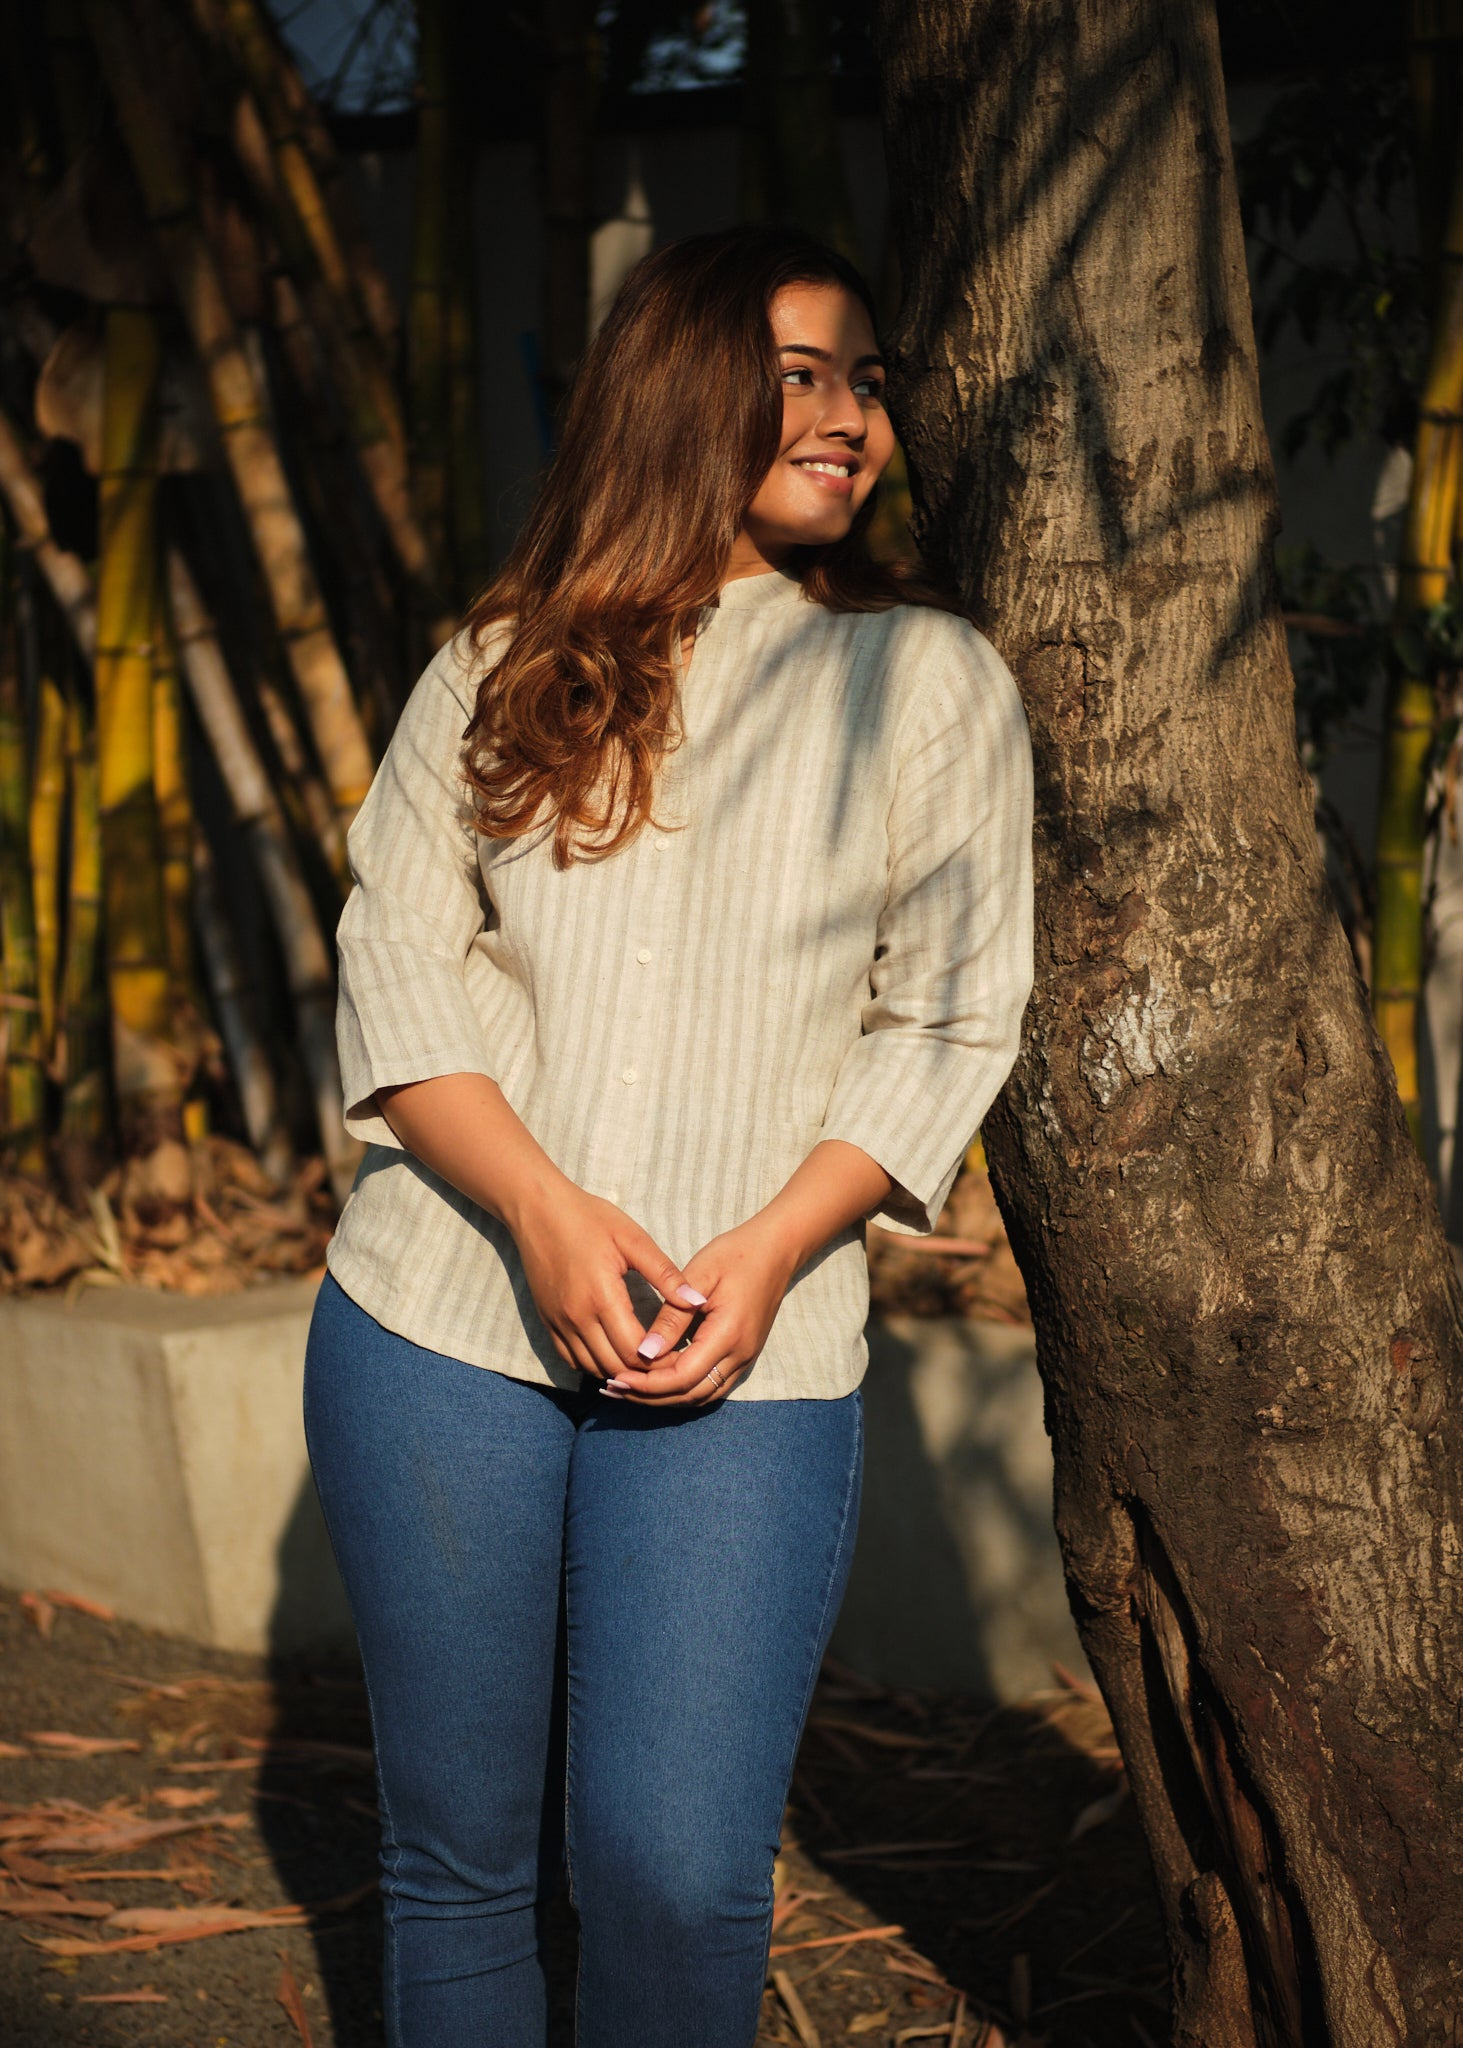 woman in a beige shirt leaning against a tree